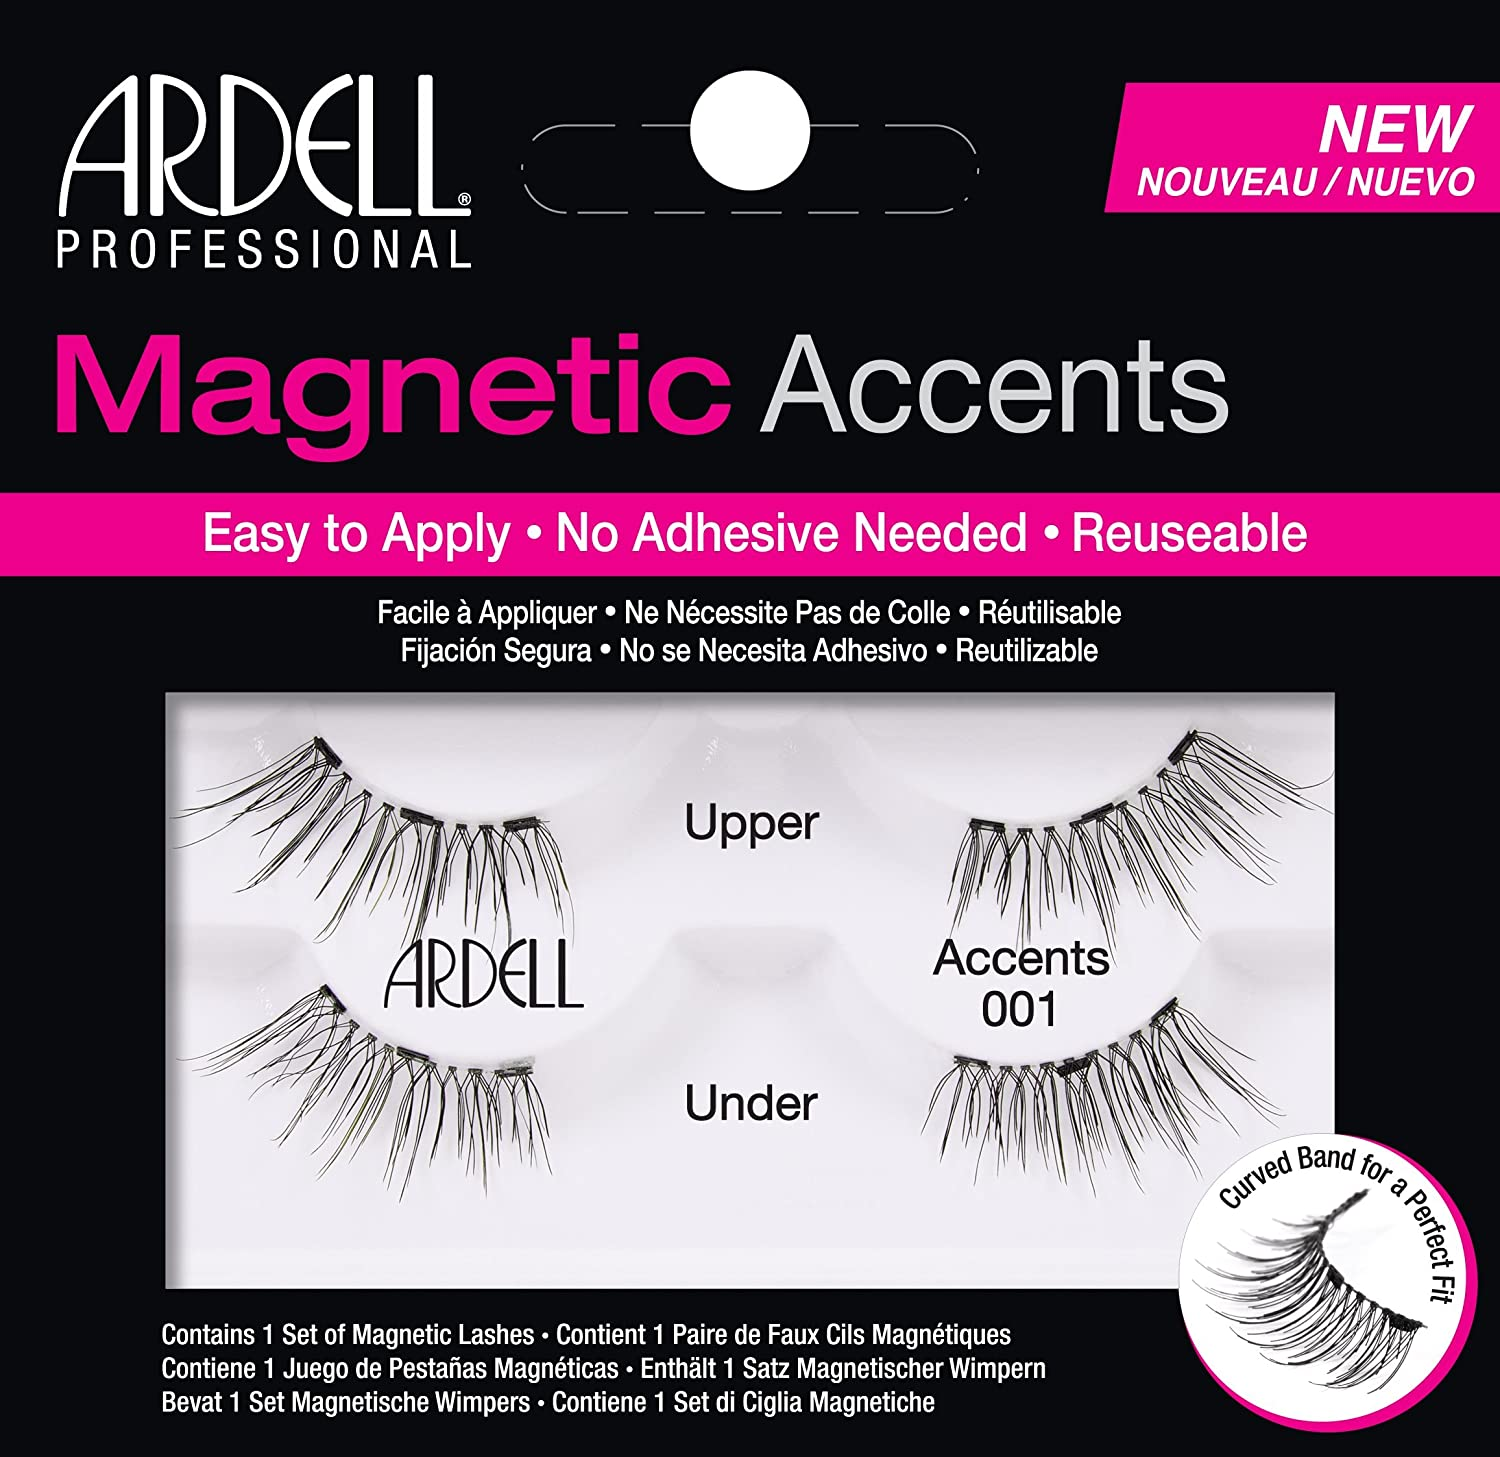 eb2e52790bc Ardell Magnetic Lashes Natural Accents 001: Amazon.co.uk: Beauty